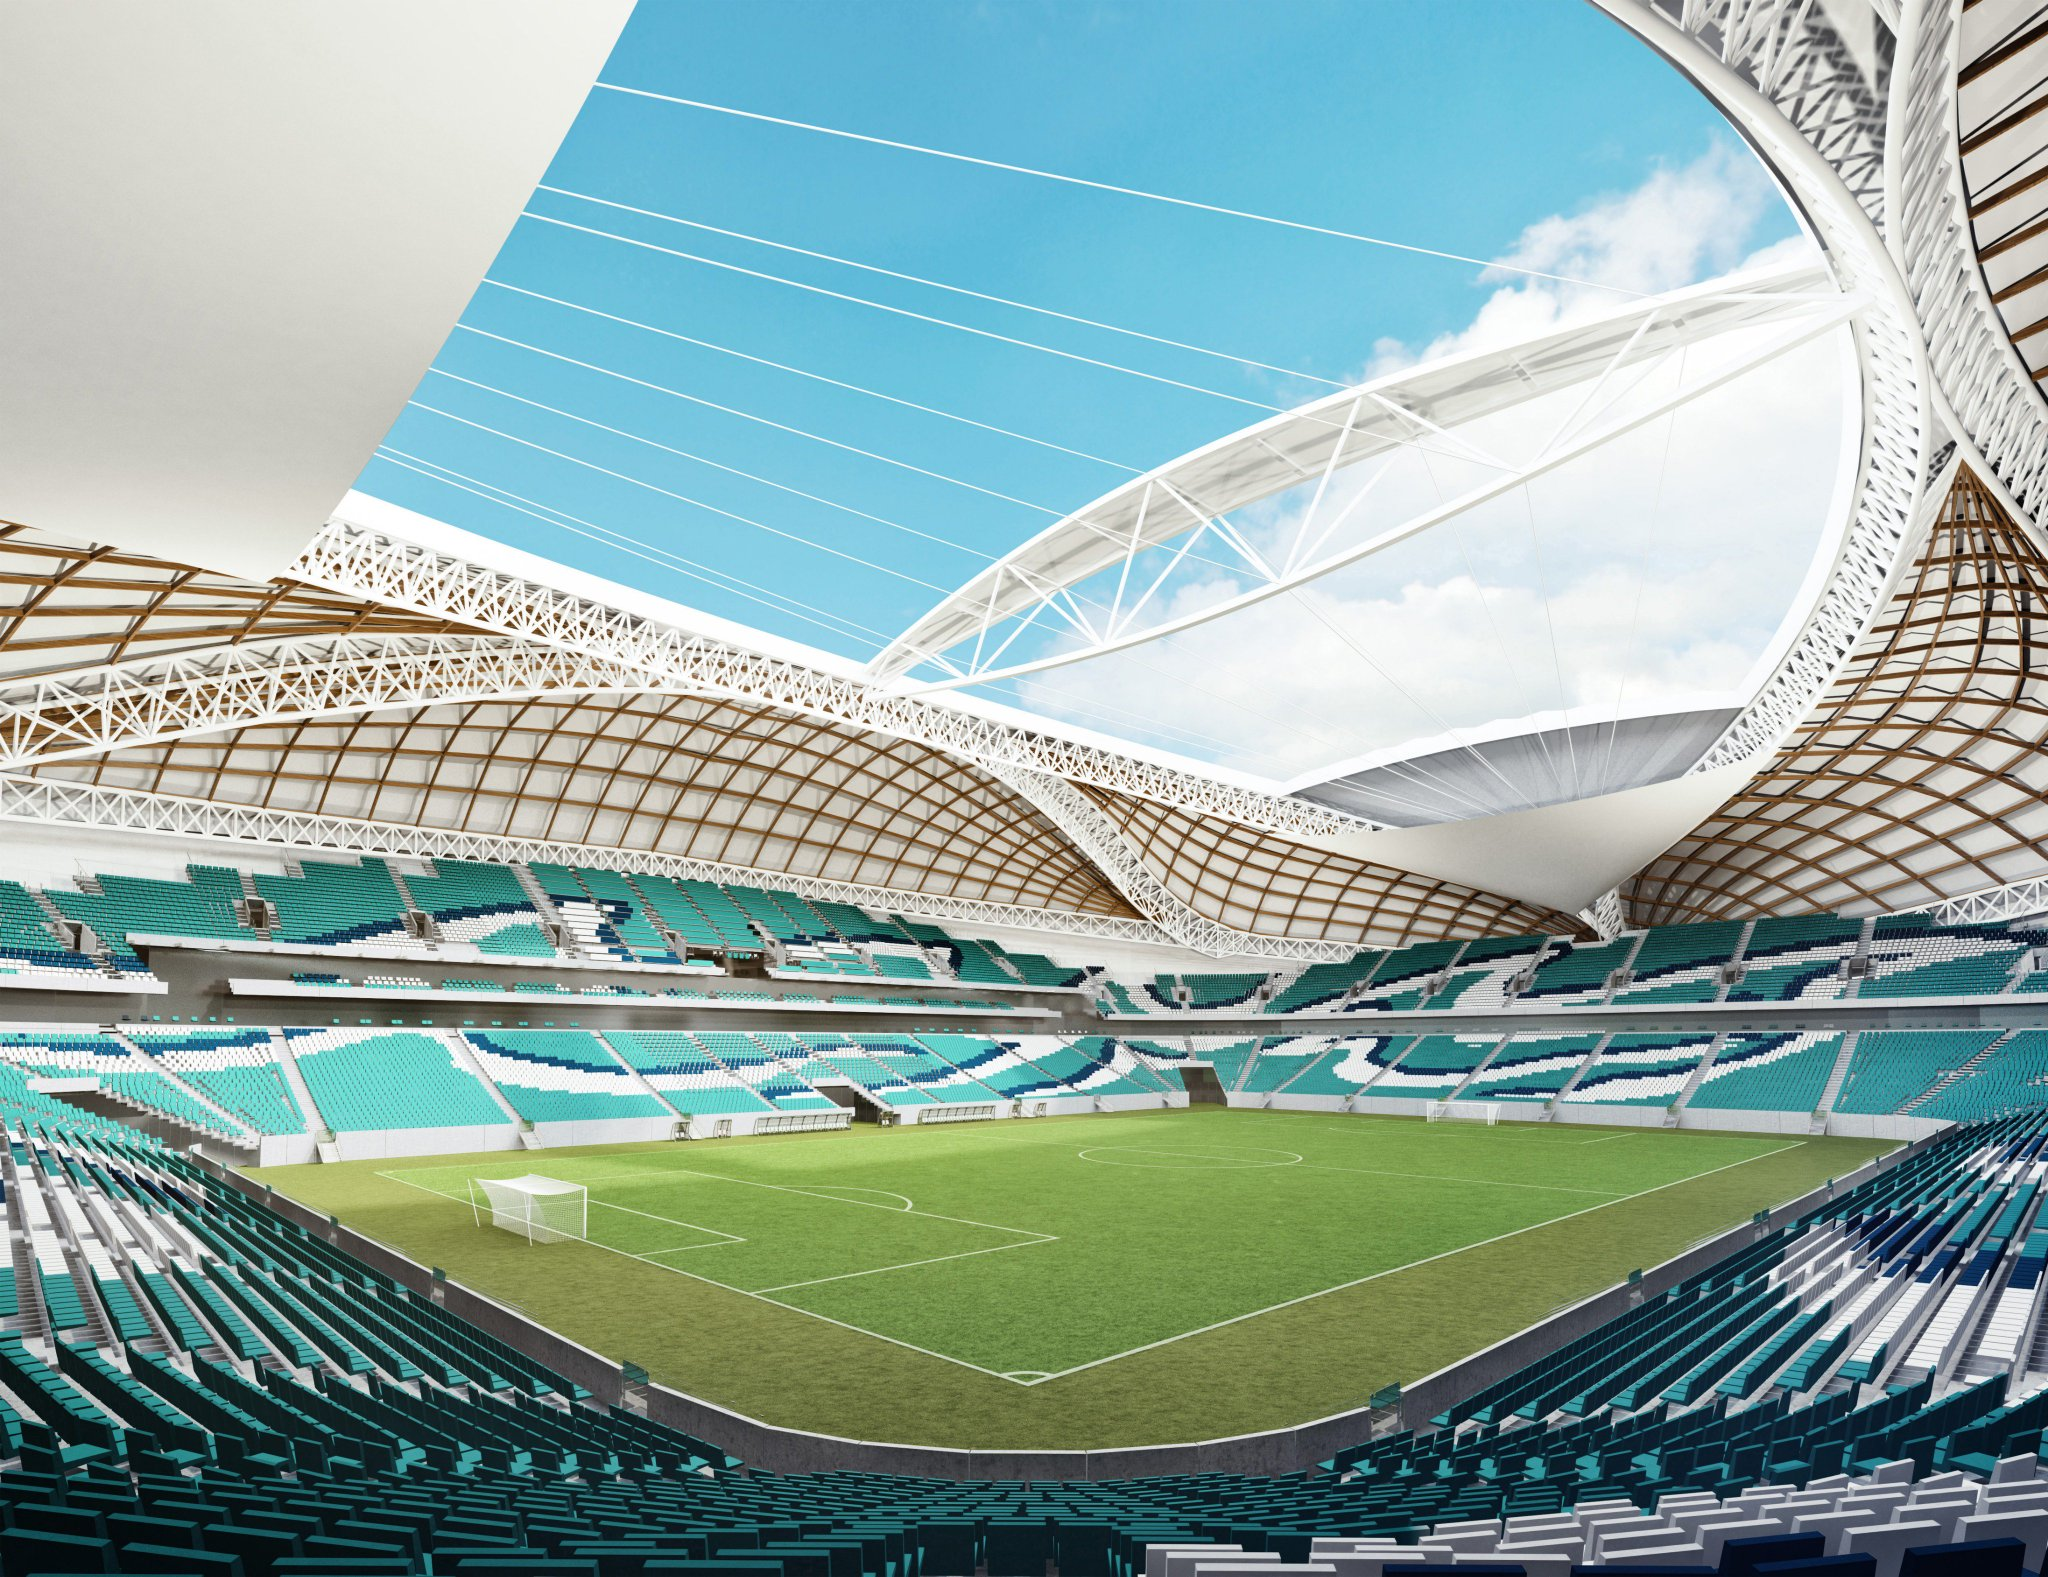 Road To 2022 On Twitter Quot A Look Inside Al Wakrah Stadium